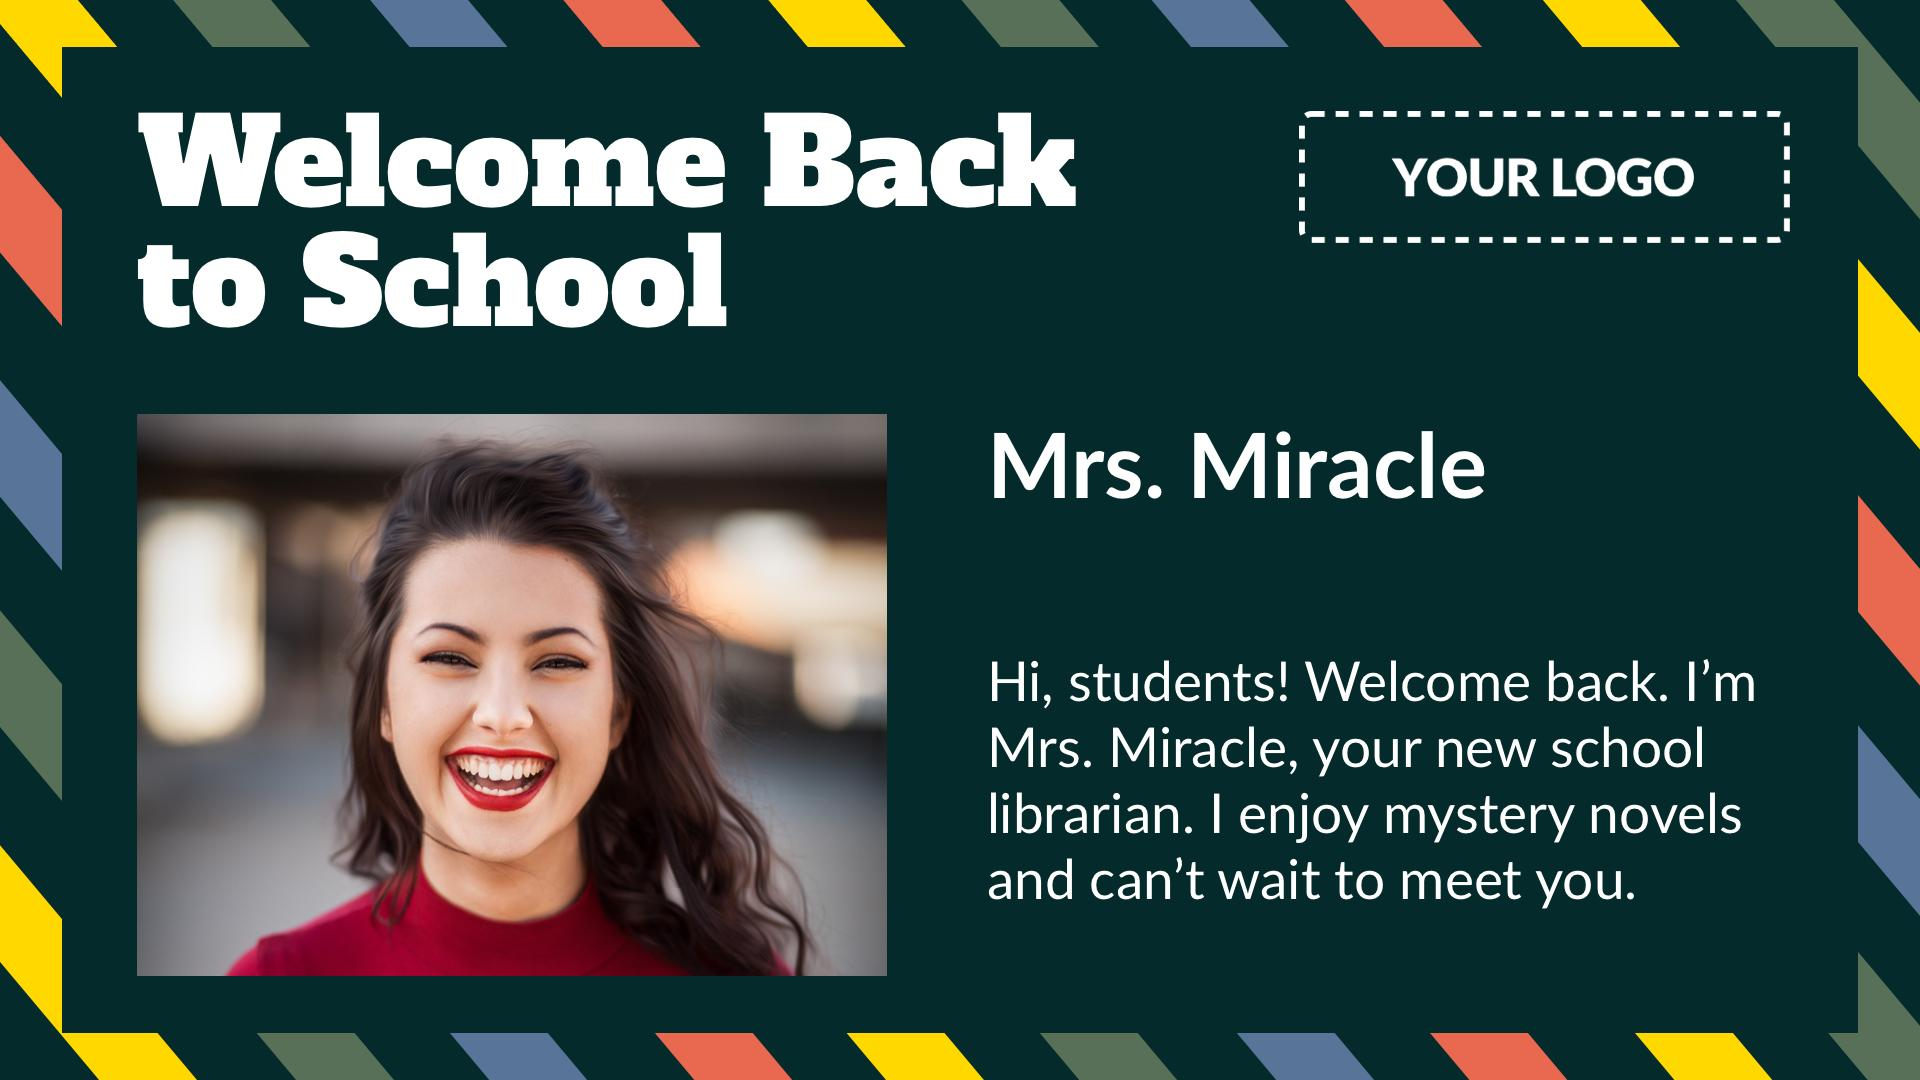 Welcome Back to School Digital Signage Template